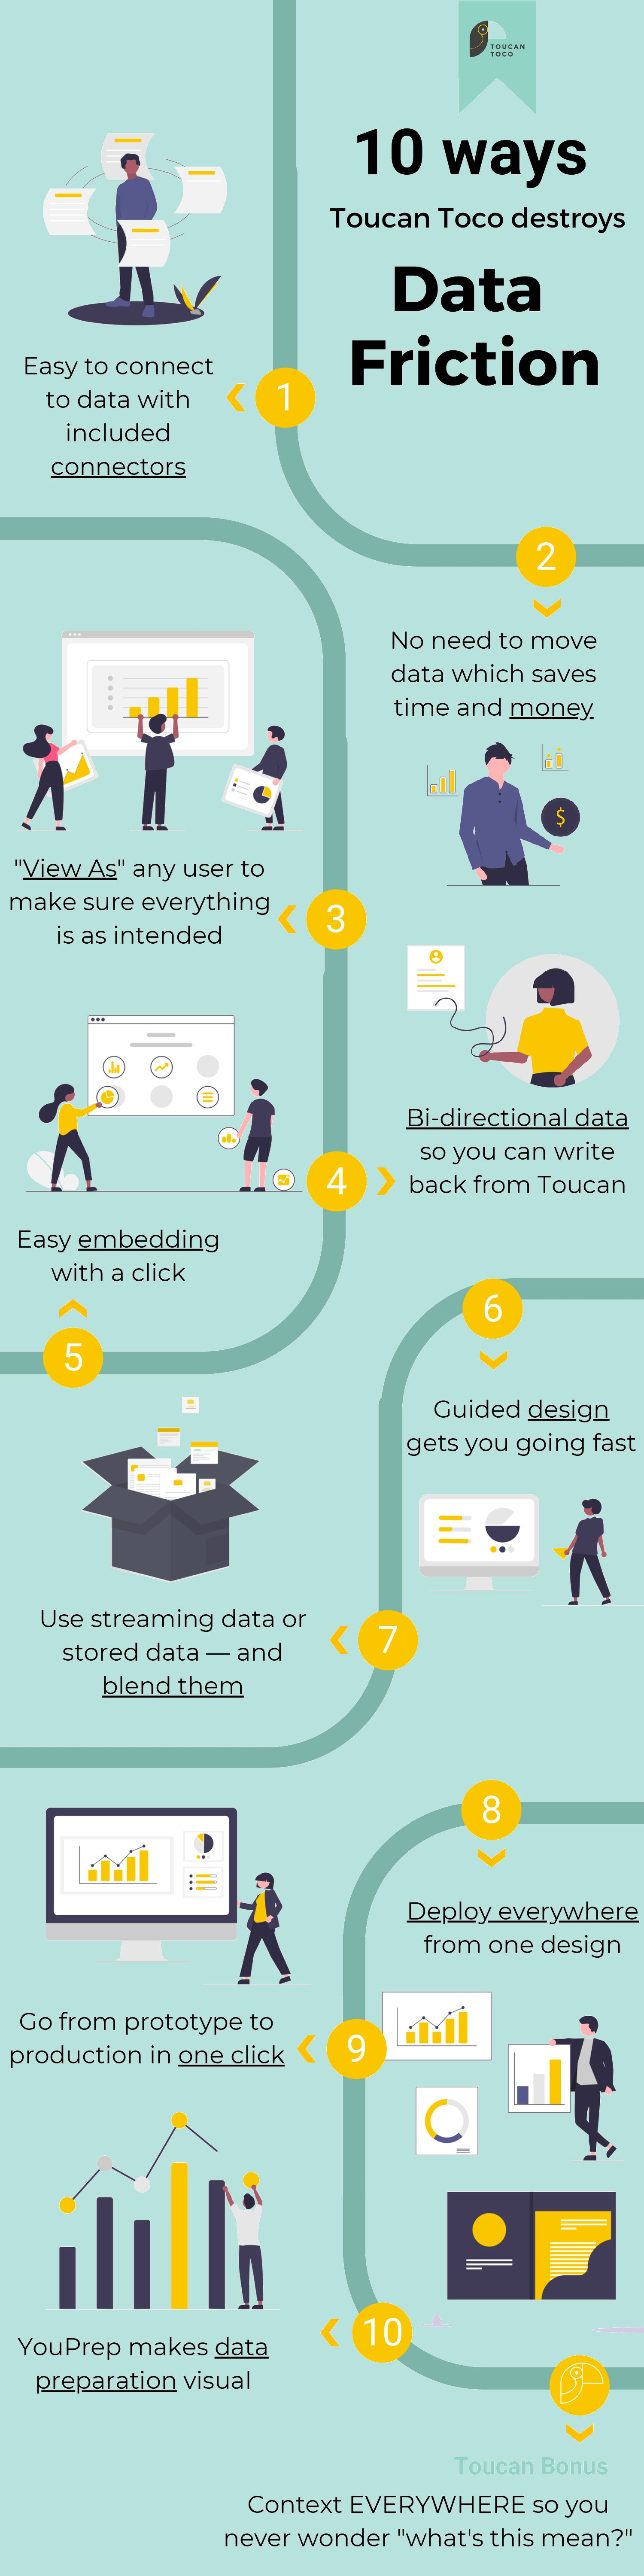 10_ways_toucan_toco_destroys_data_friction